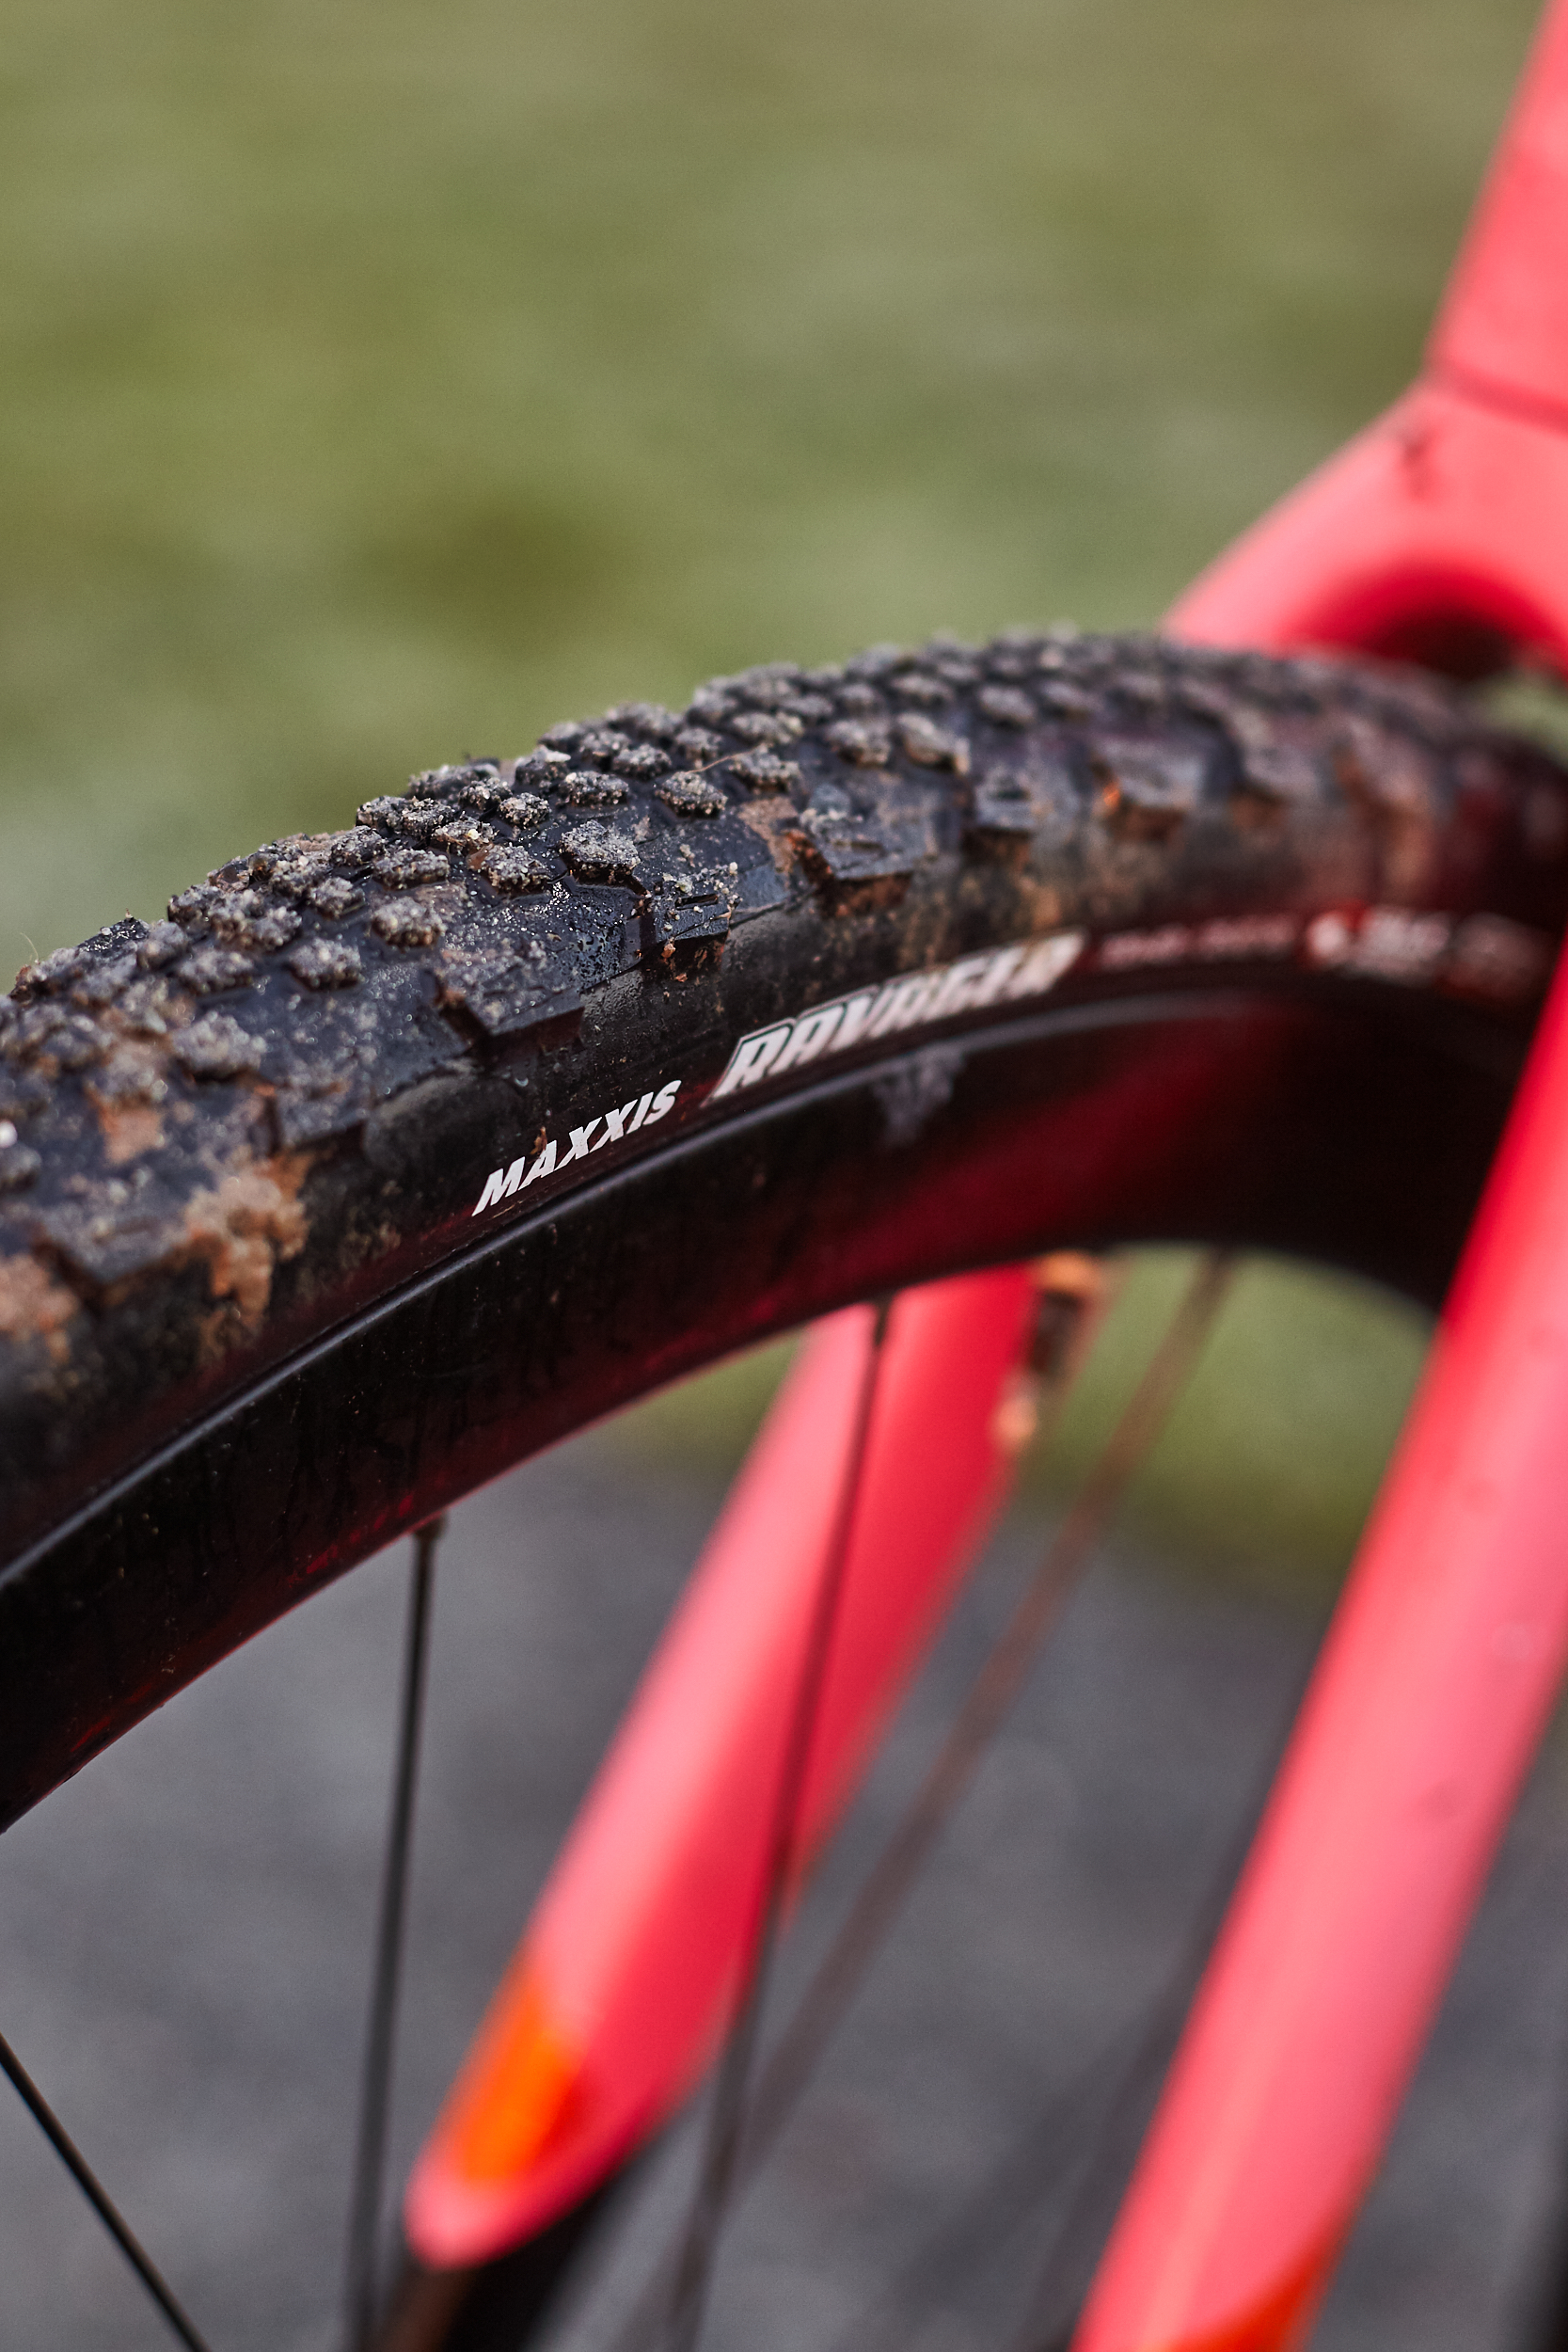 Maxxis Ravager gravel tyre 700 40